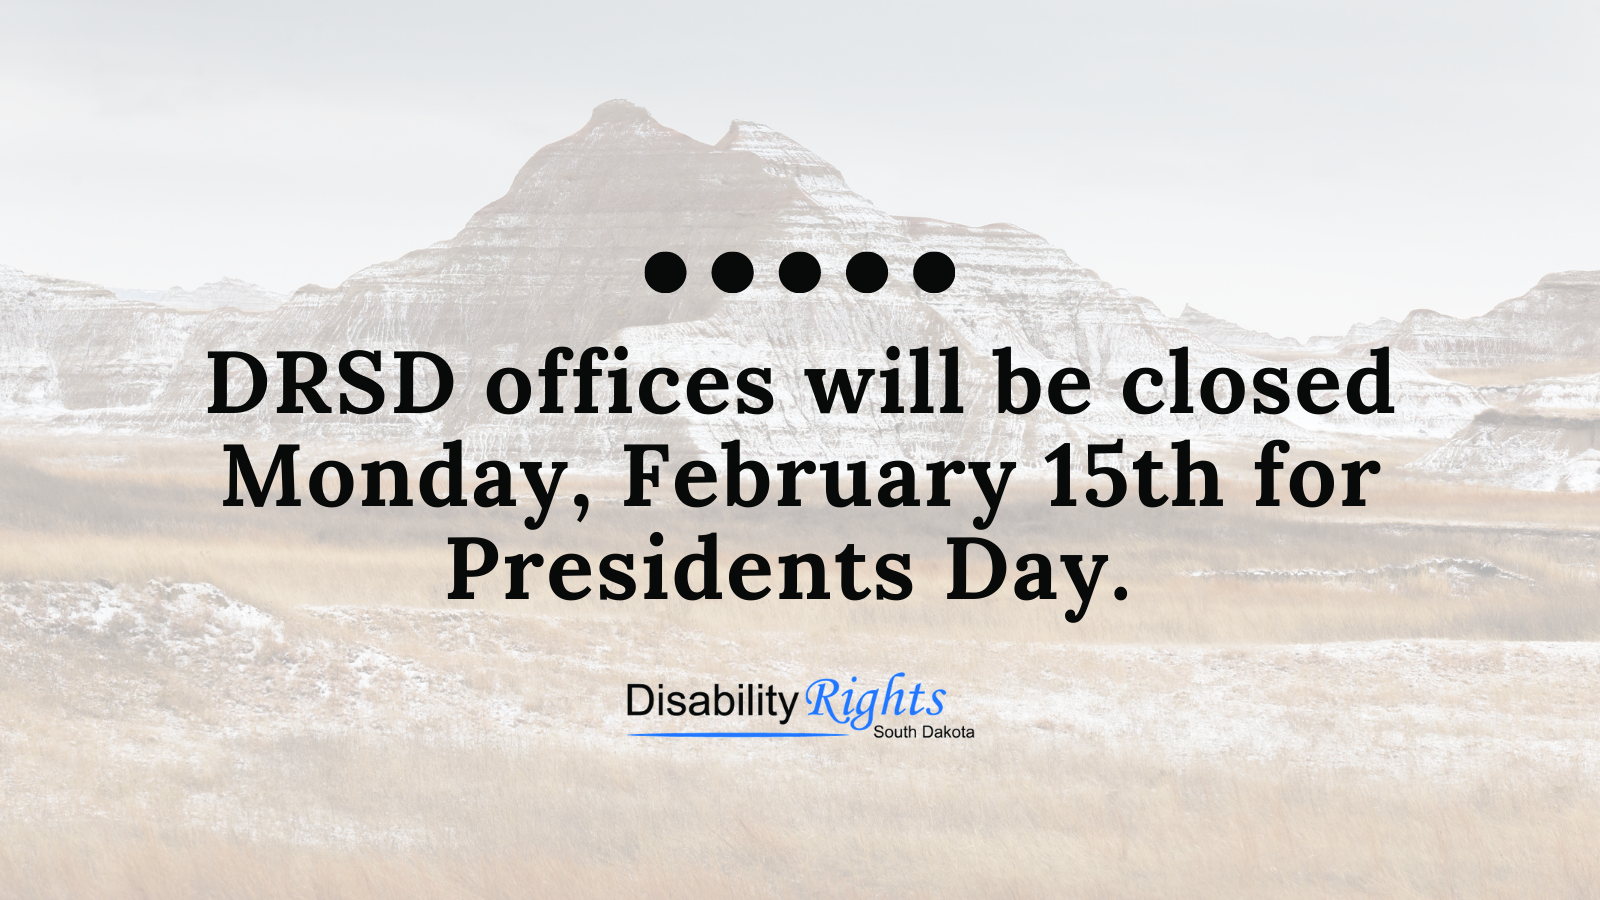 DRSD offices will be closed on Feb 15th for Presidents Day.